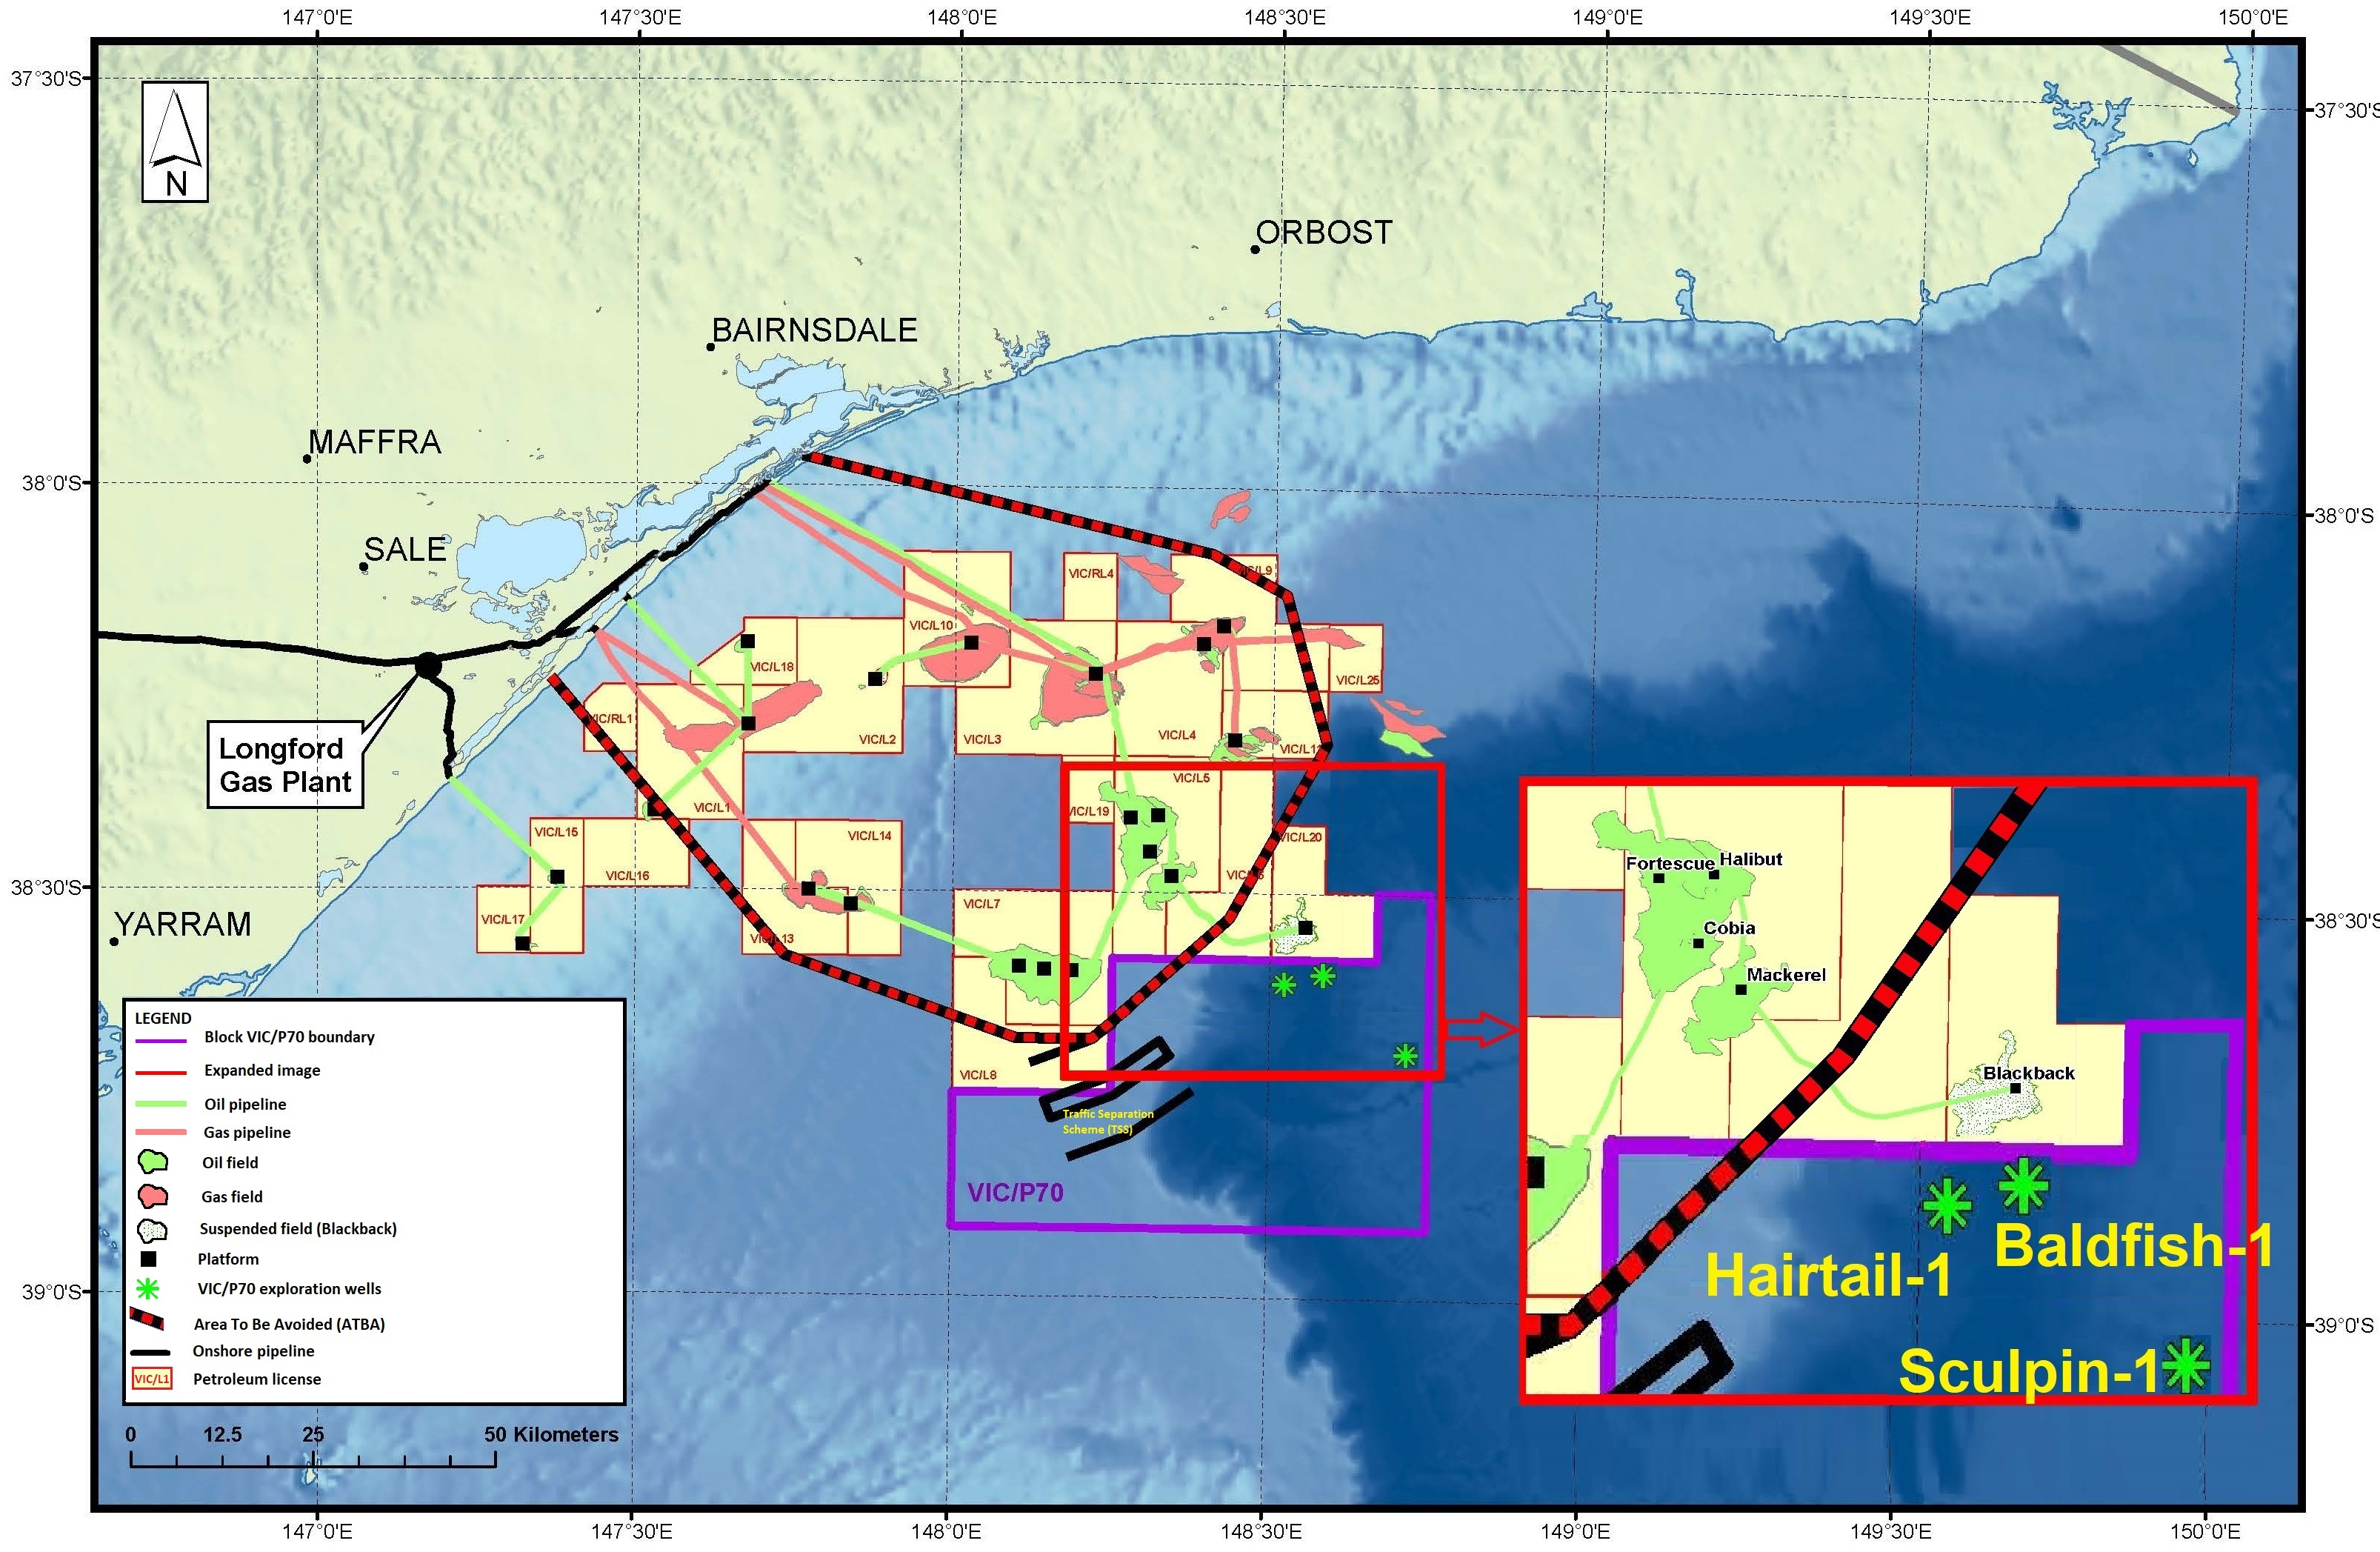 Location map - Activity: VIC/P70 Exploration Drilling (refer to description)